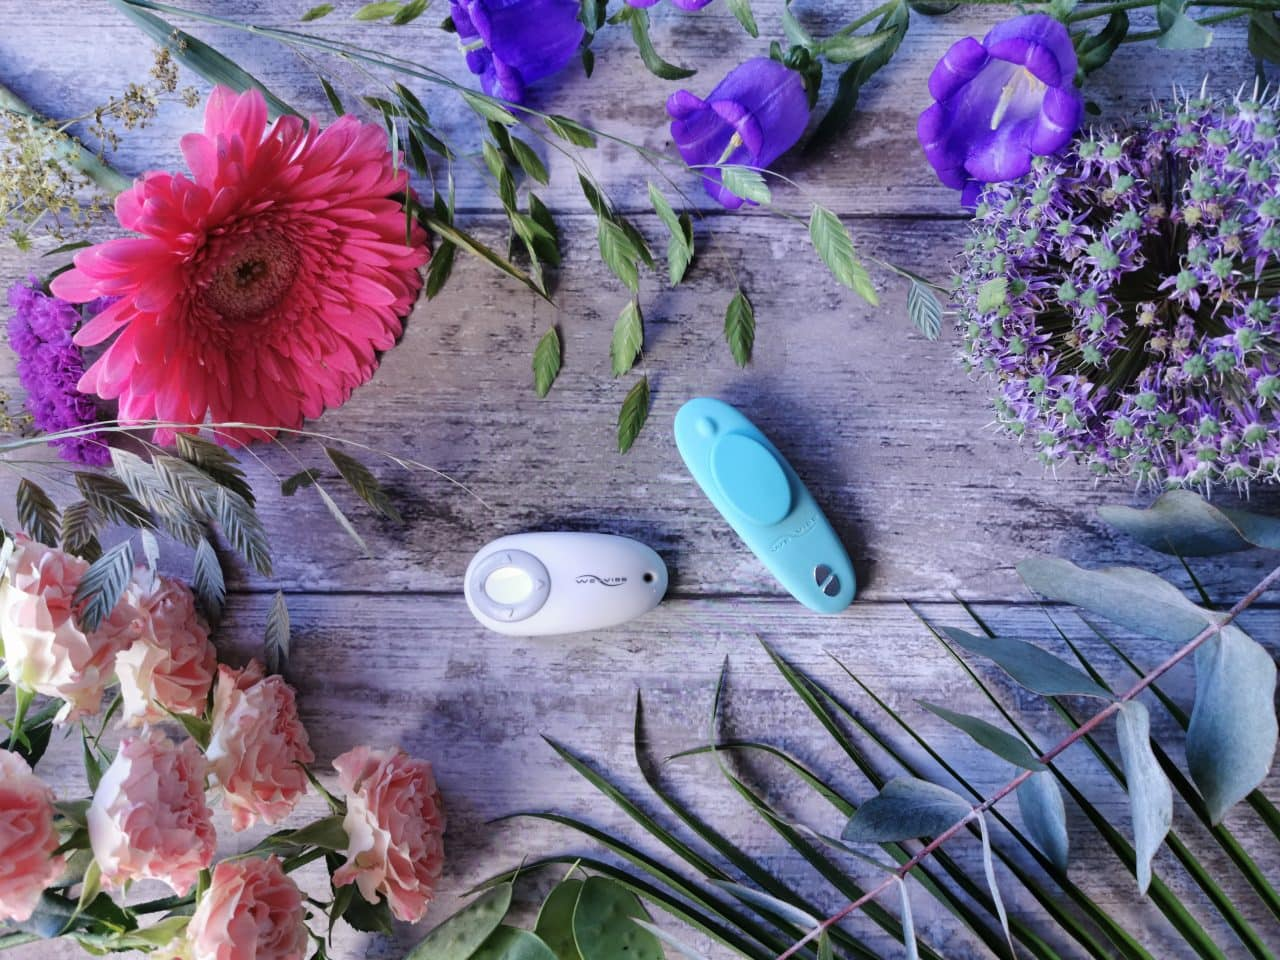 We-Vibe Moxie Wearable Clitoral Vibrator